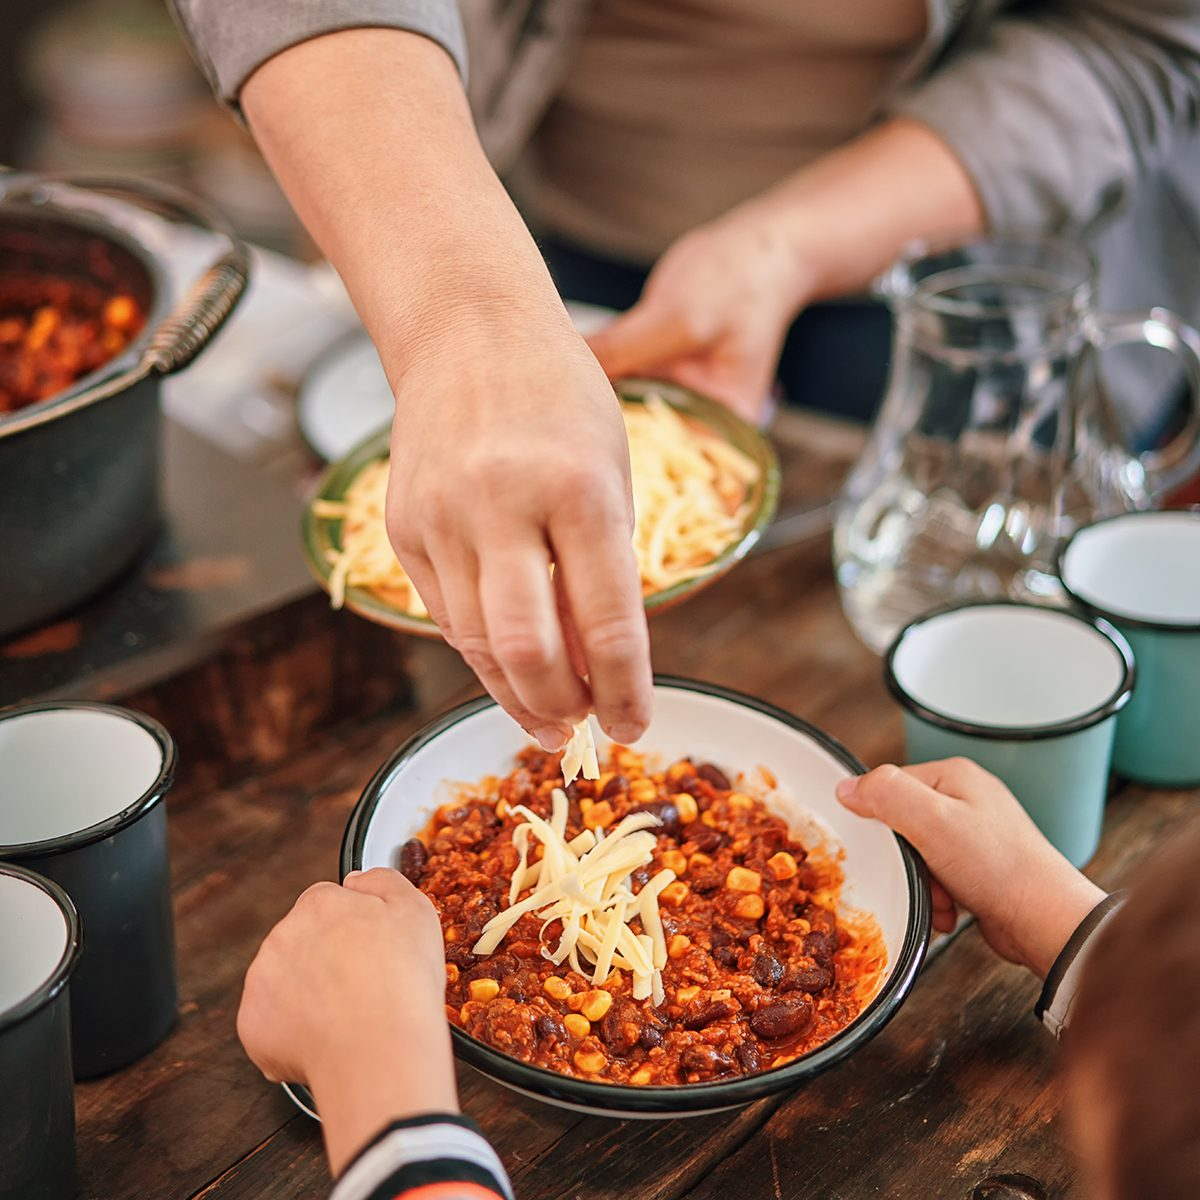 Young Family Eating Chili Con Carne